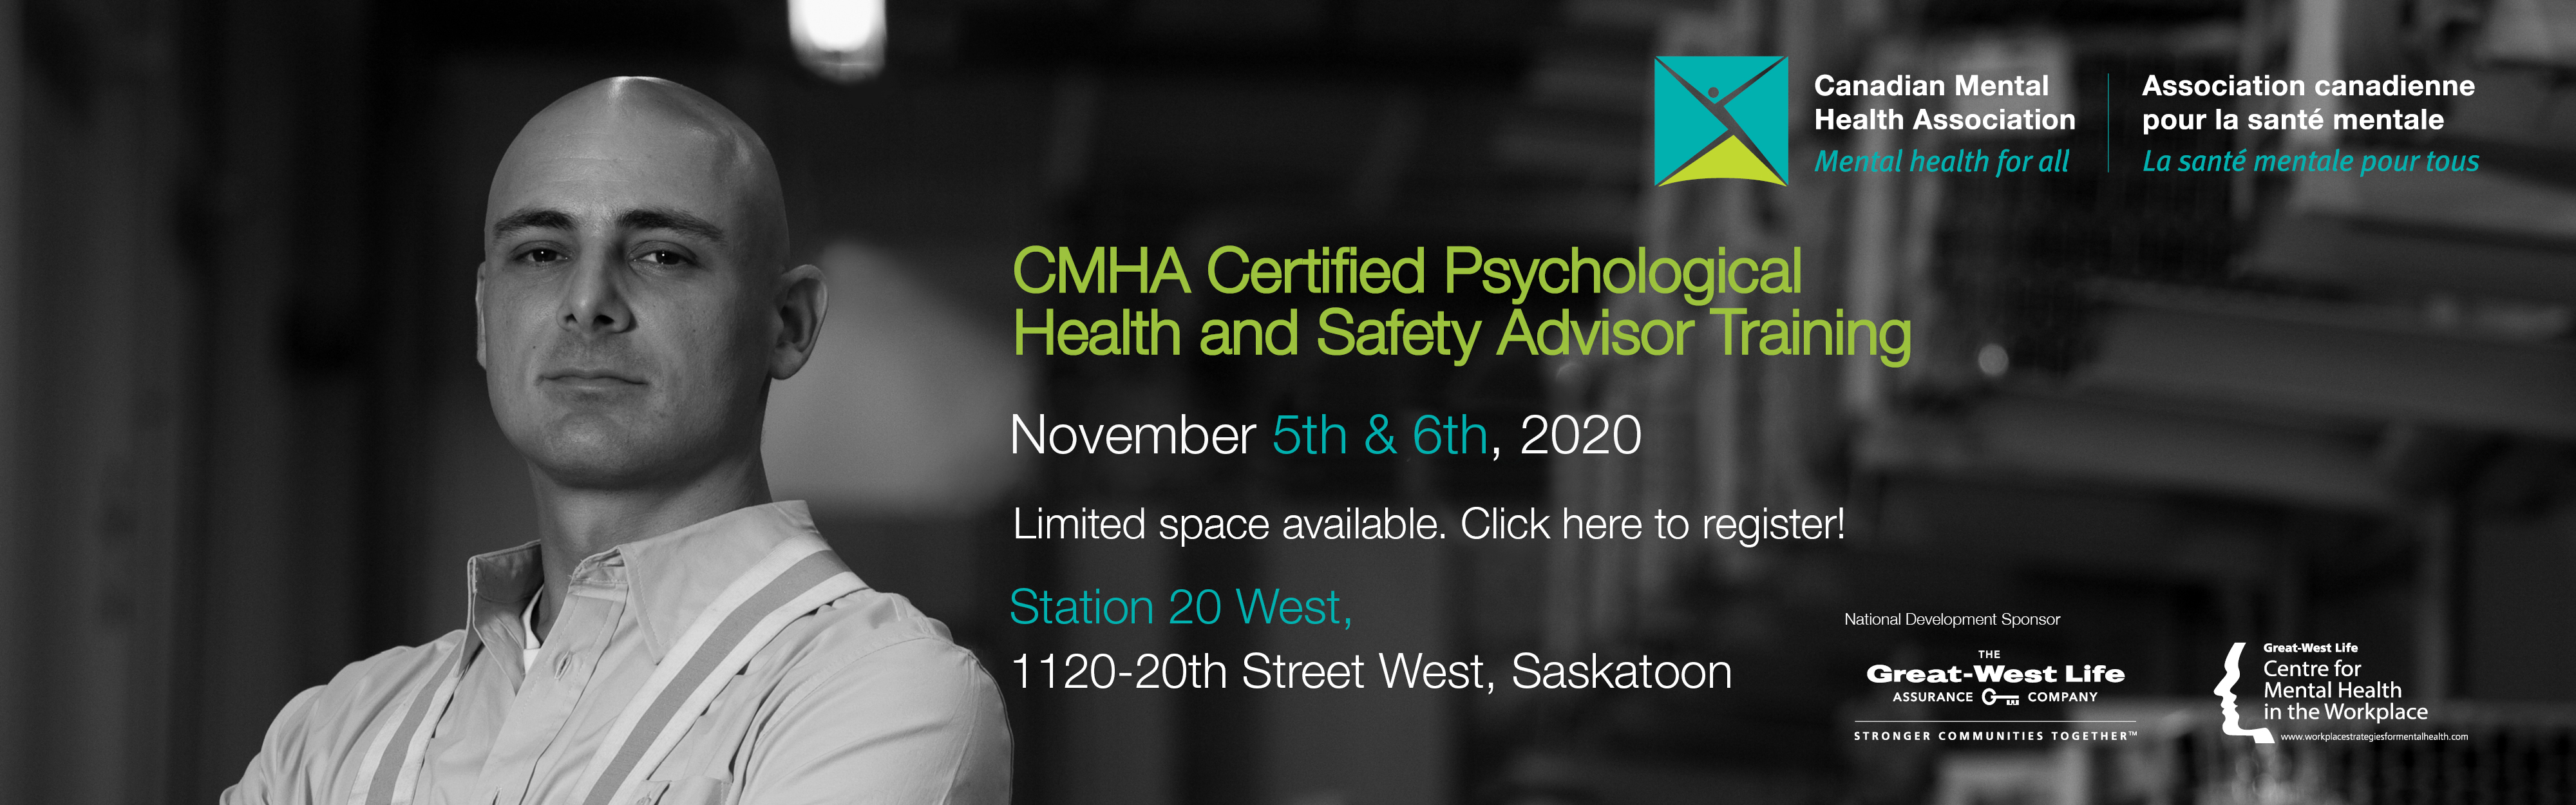 CMHA's Certified Psychological Health and Safety Advisor Training program